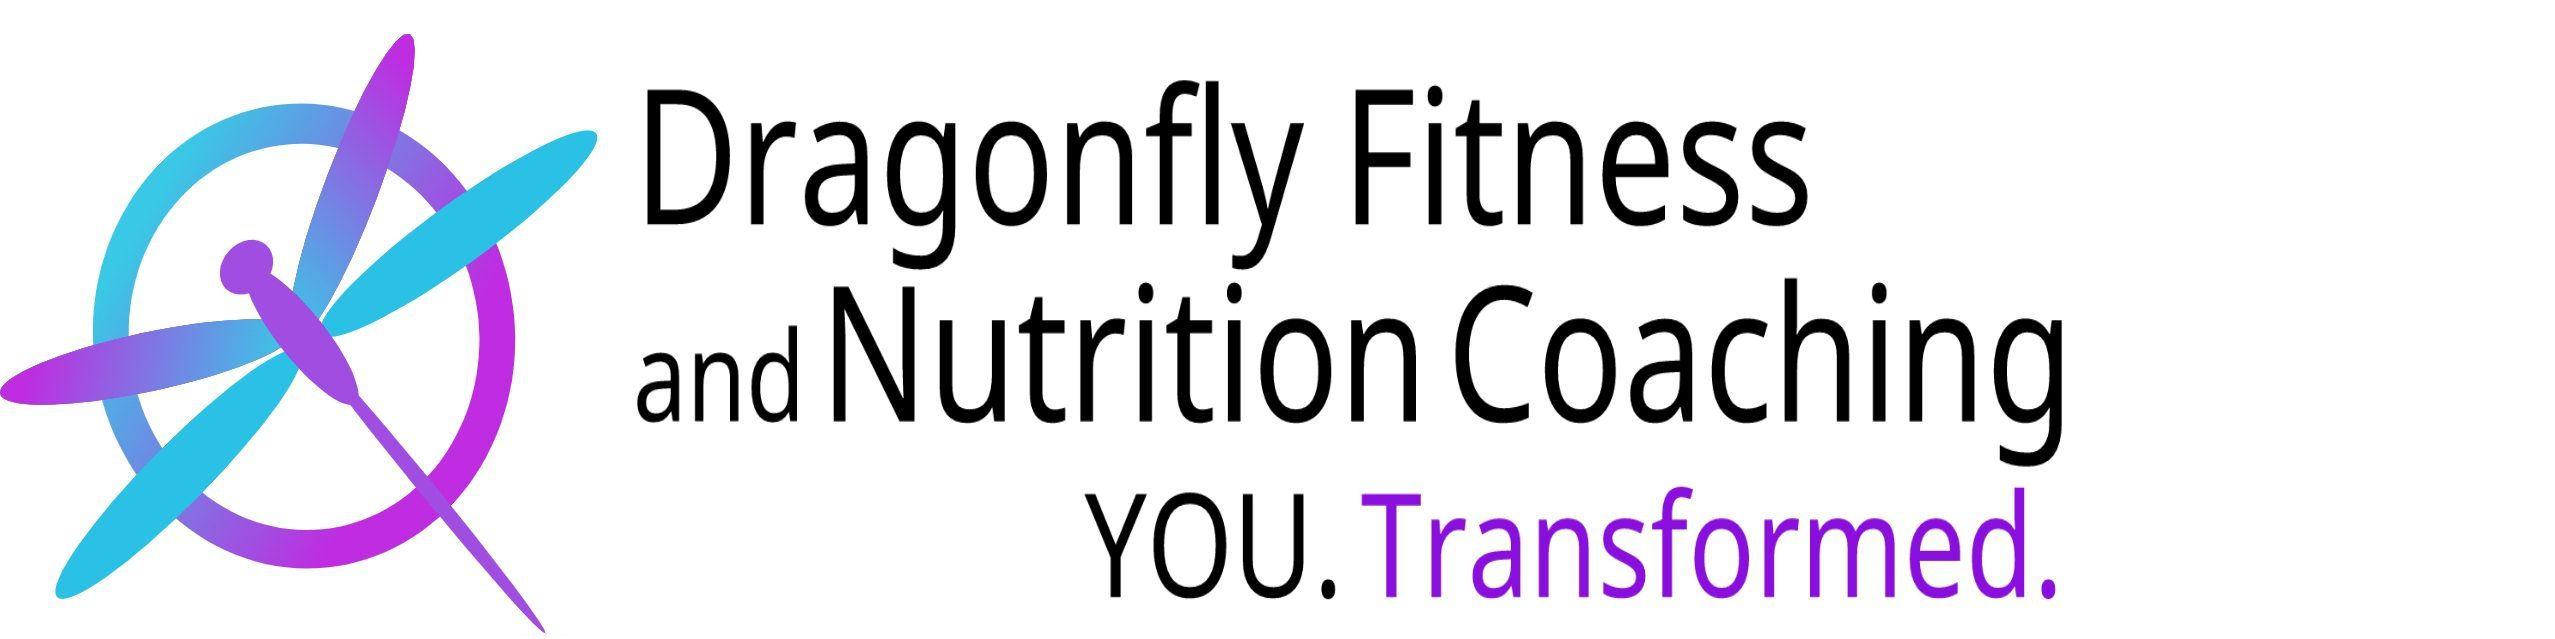 Dragonfly Fitness and Nutrition Coaching